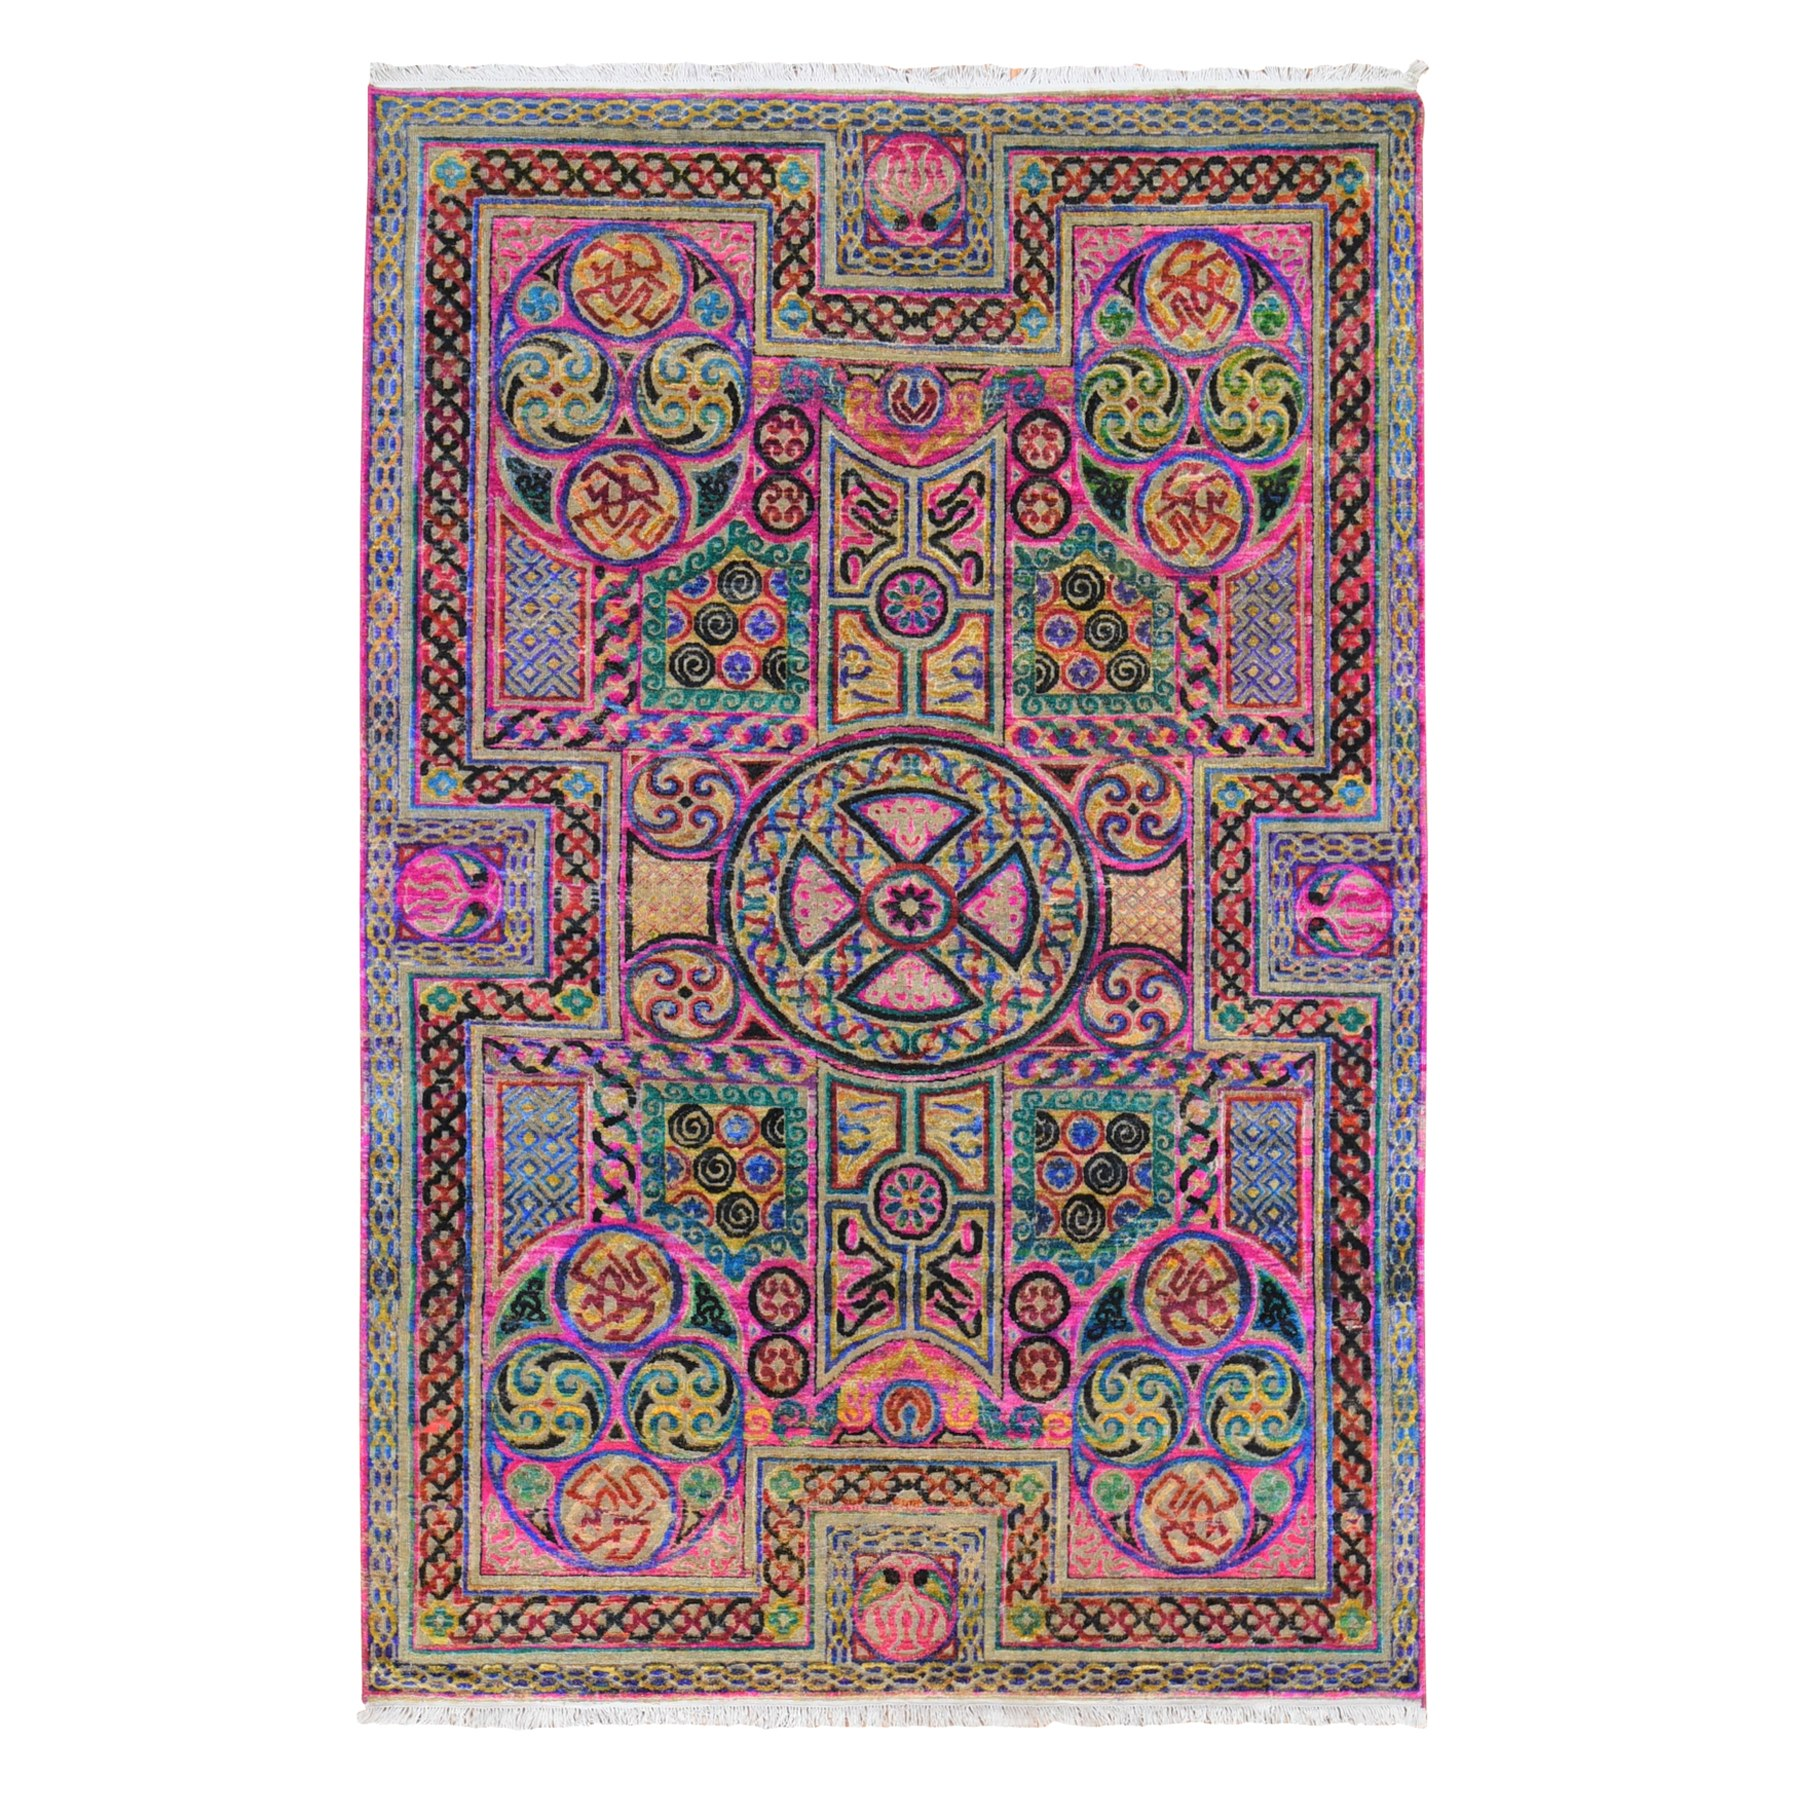 "6'x9'2"" Pink Sari Silk Arts and Crafts Design Hand Woven Colorful Oriental Rug"